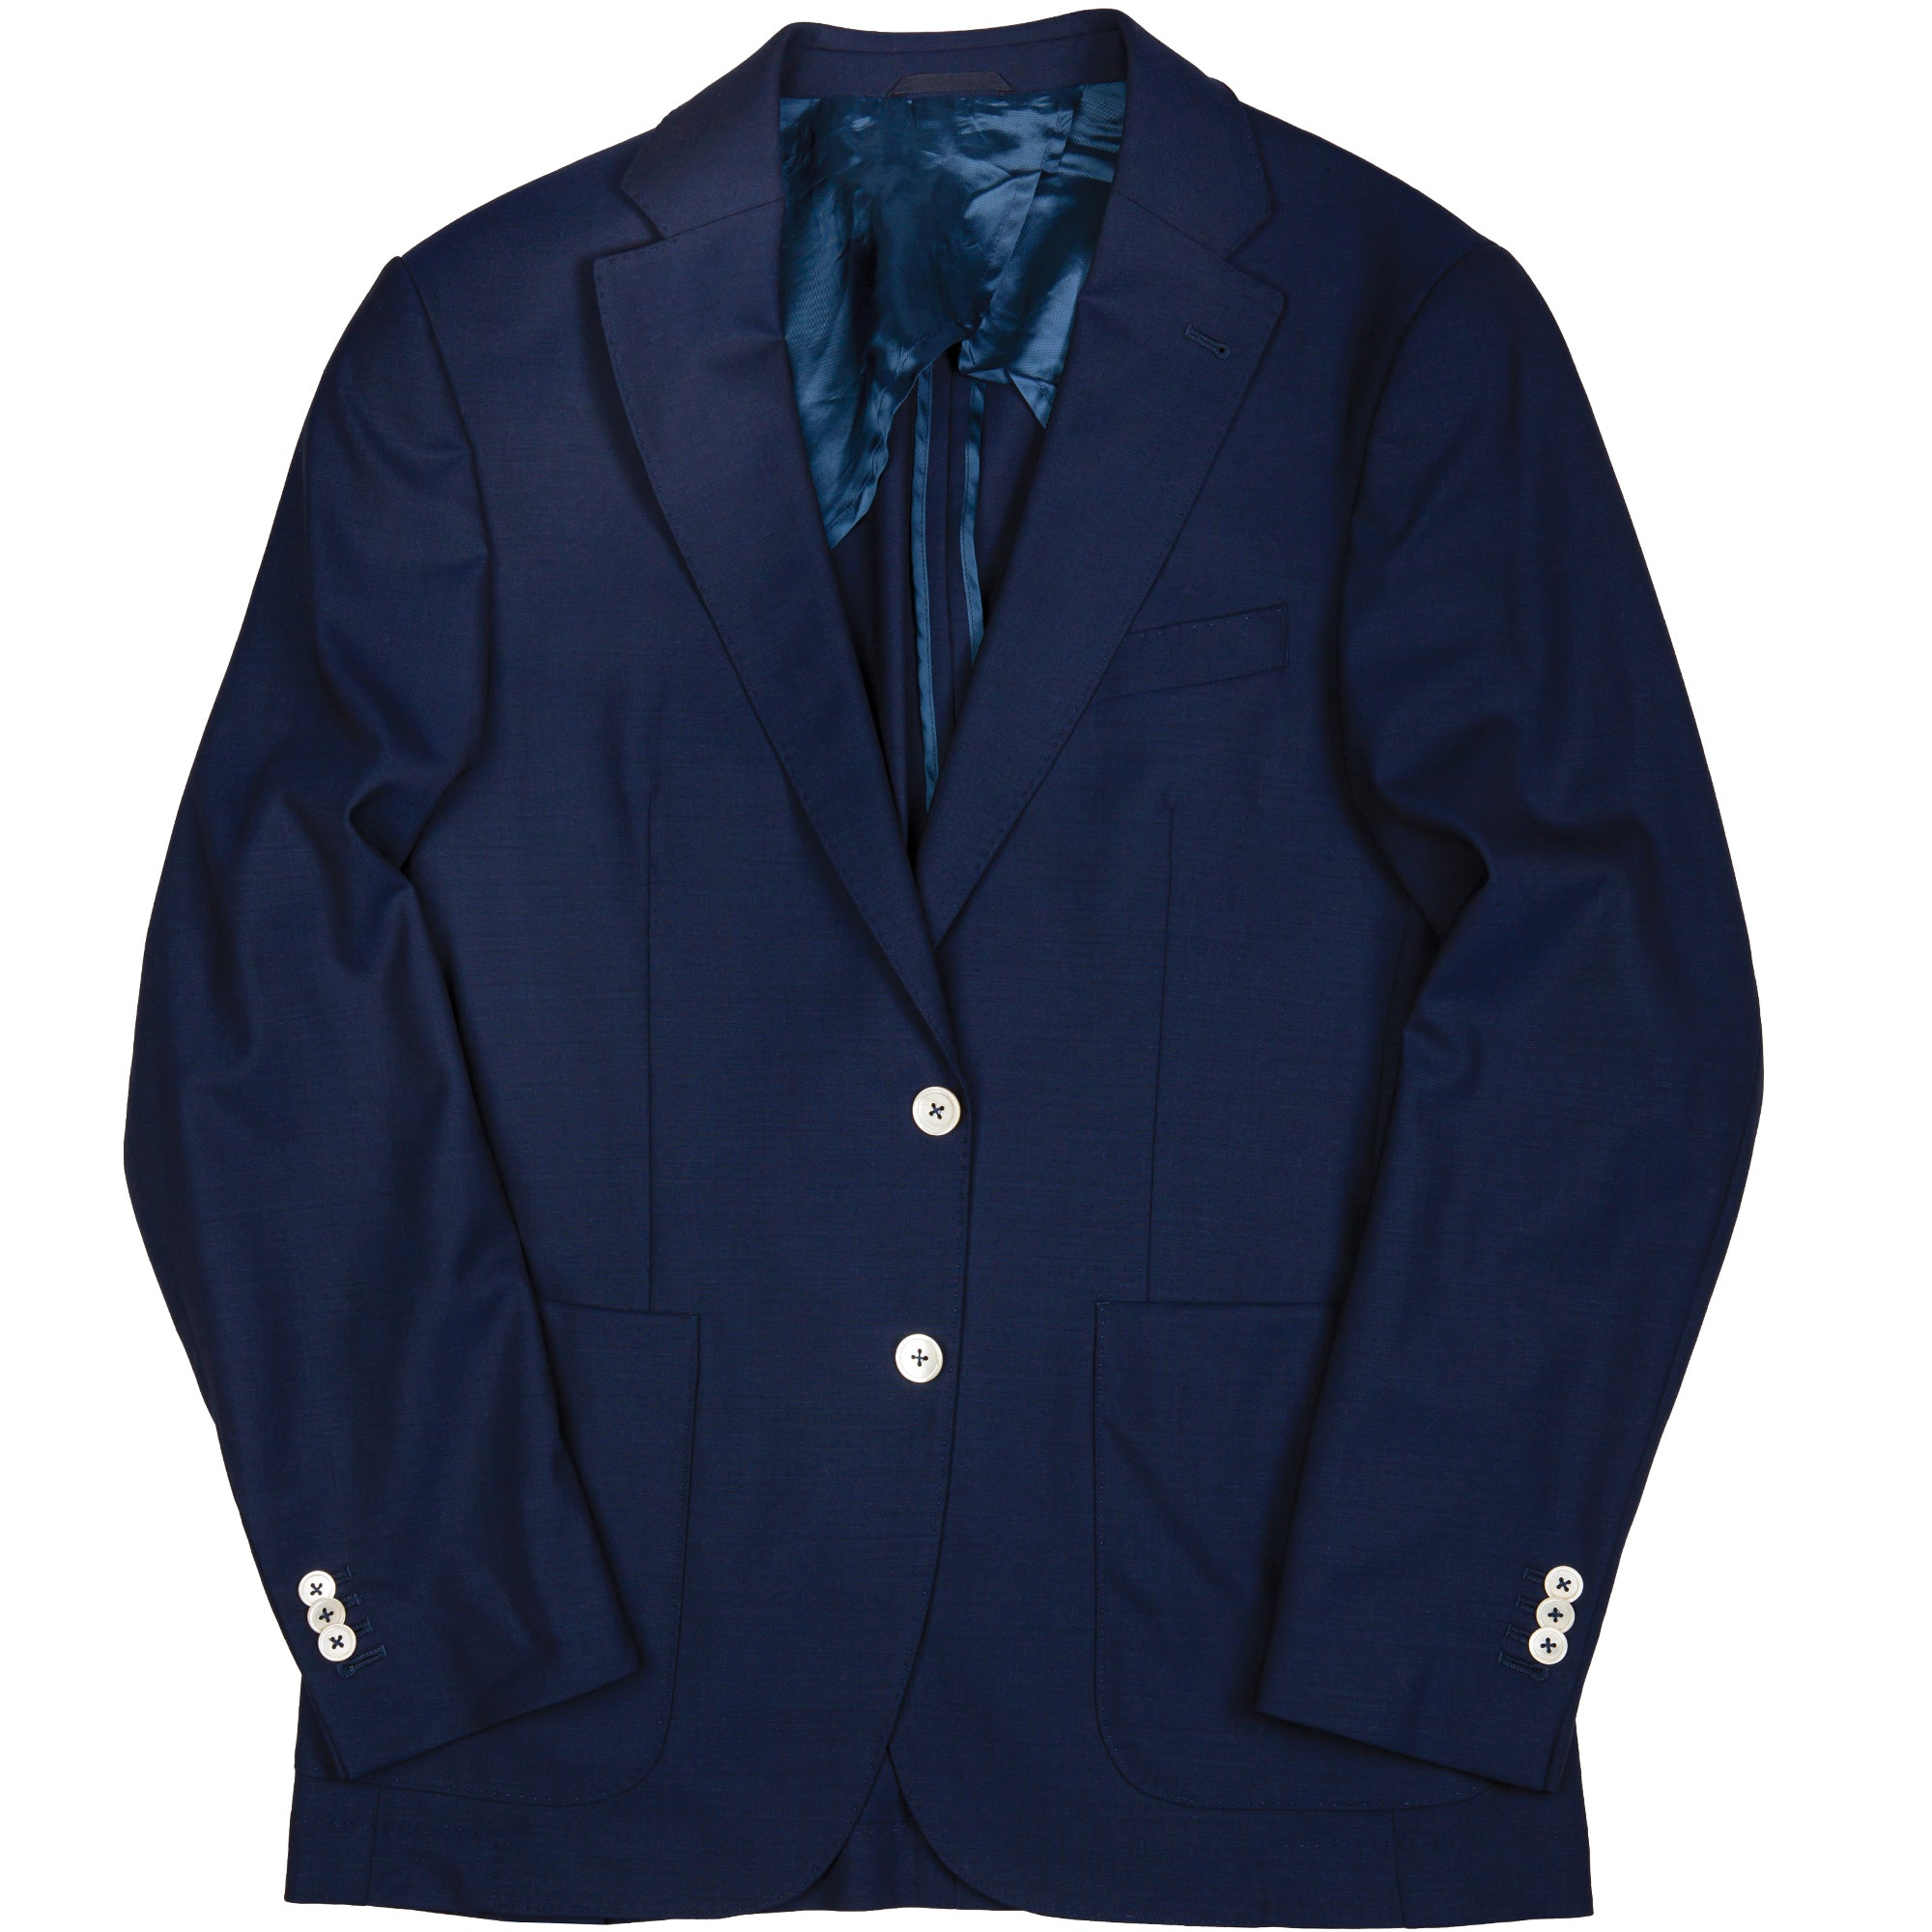 Twilight Blue Sport Coat